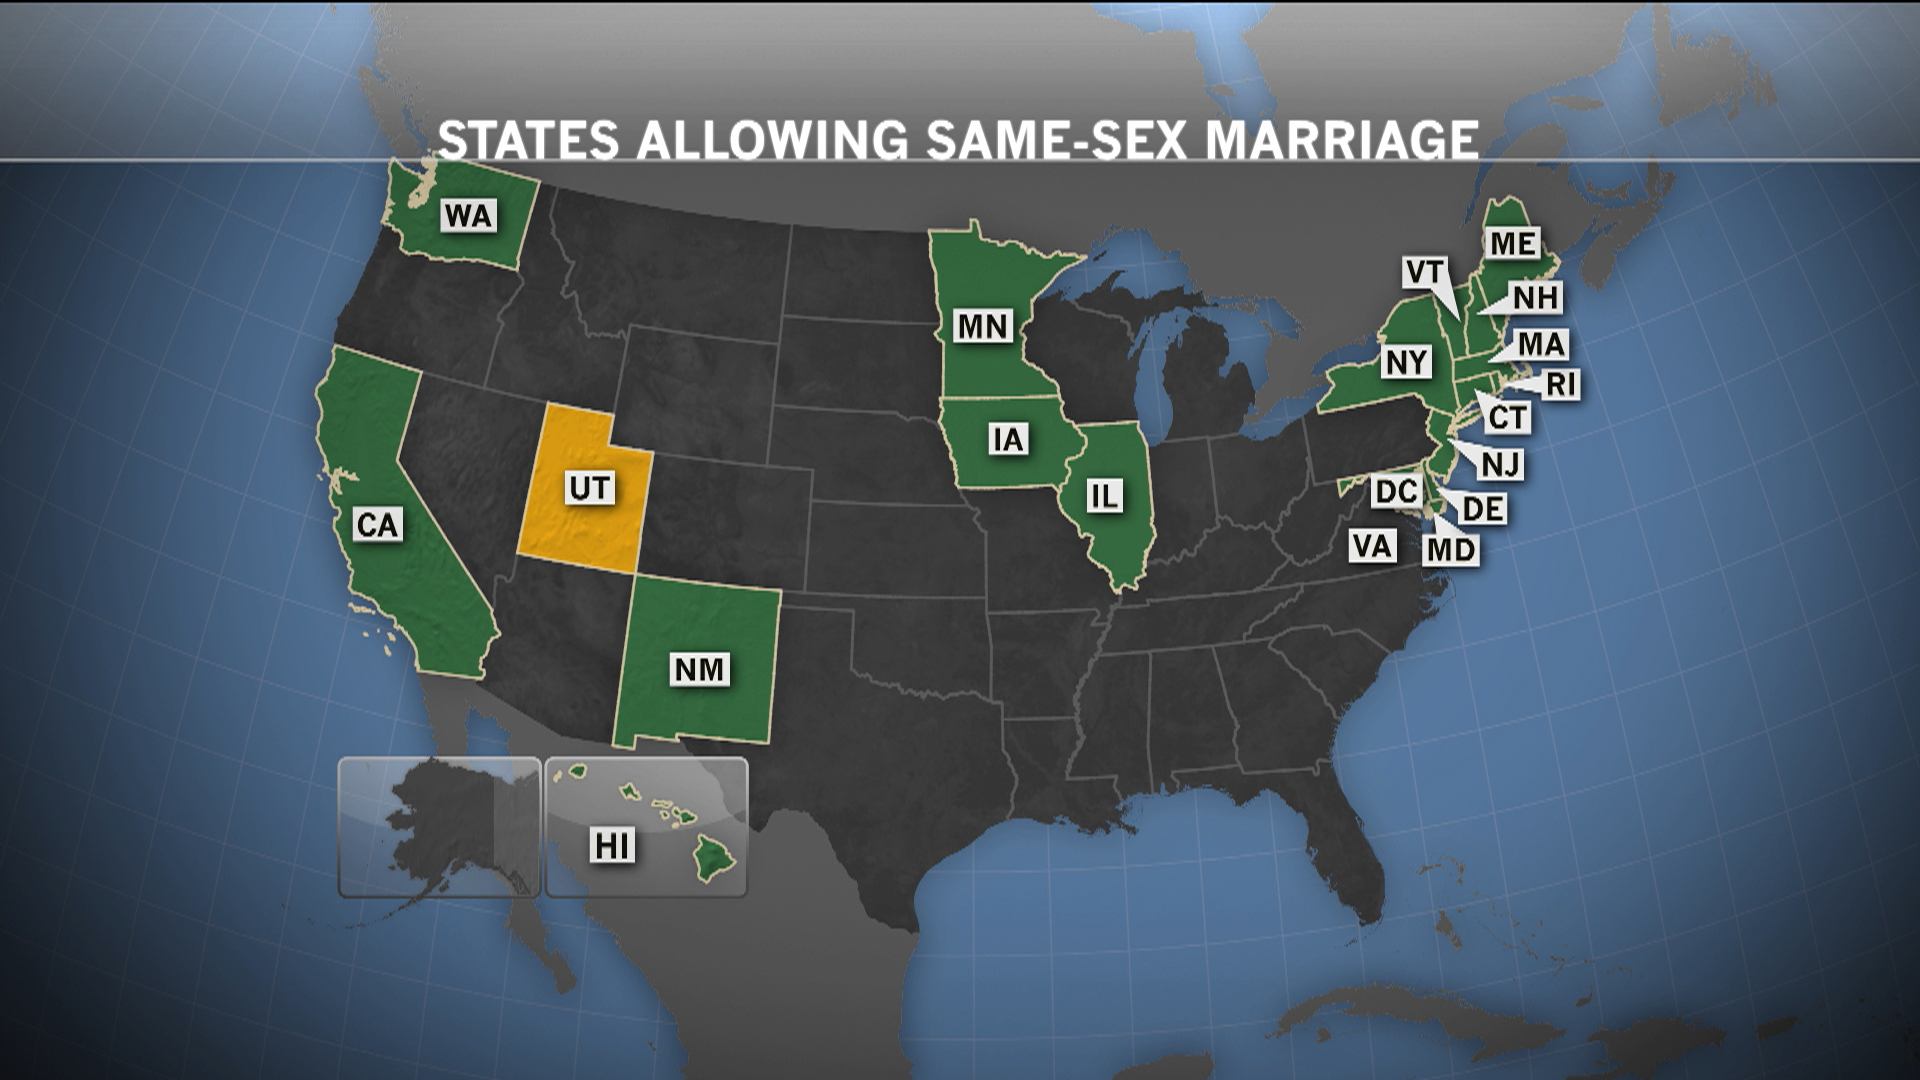 Marriage 'patchwork' not sustainable